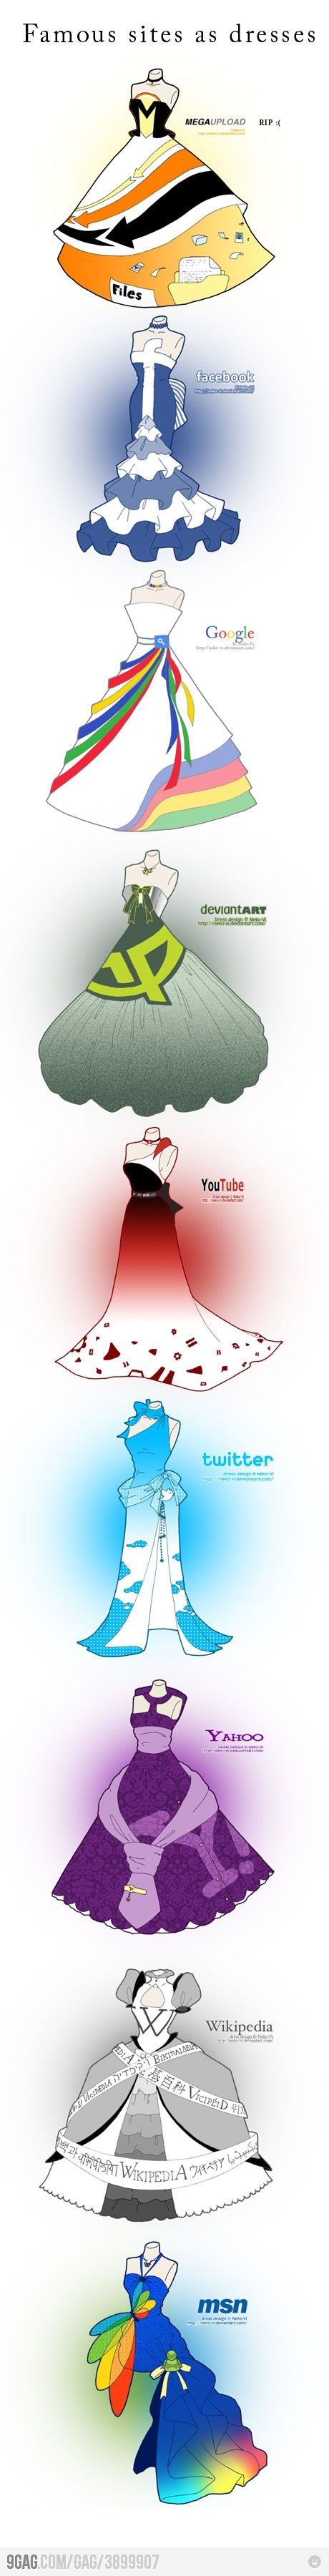 Famous sites as dresses:  *MegaUpload  *Facebook  *Google  *deviantART  *YouTube  *Twitter  *Yahoo  *Wikipedia  *msn